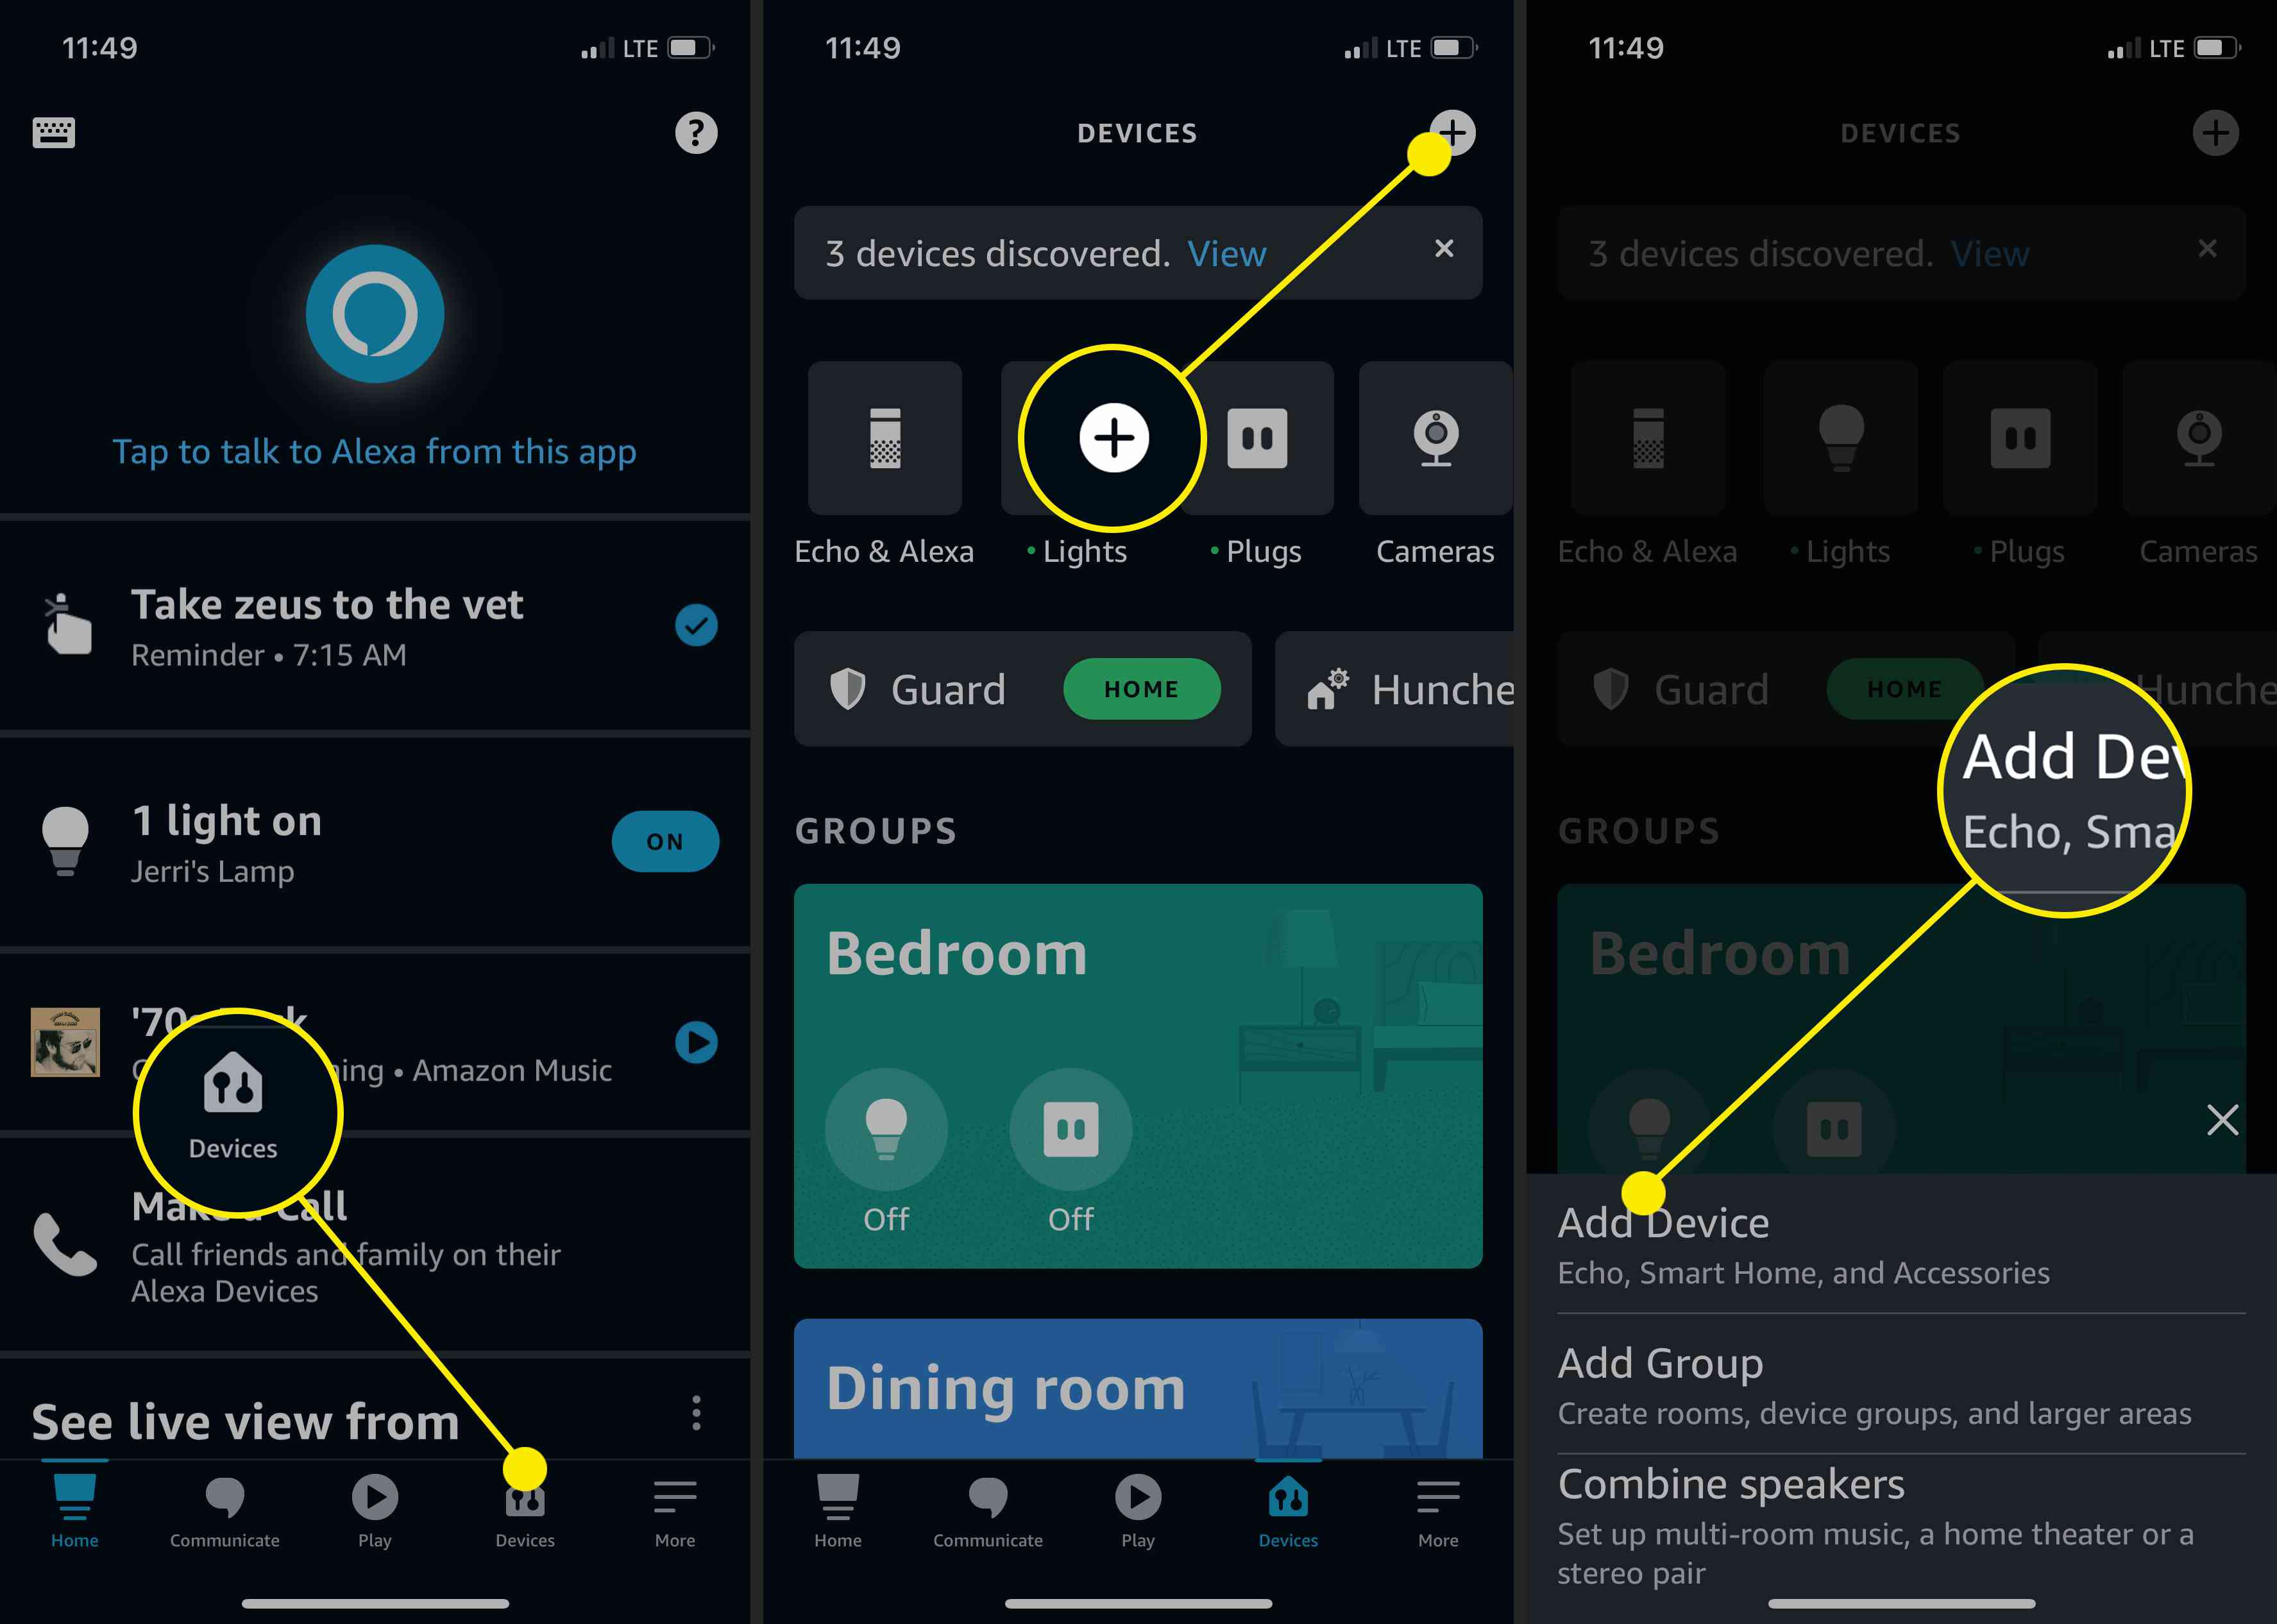 Screenshots showing how to add a device on the Amazon Alexa app.